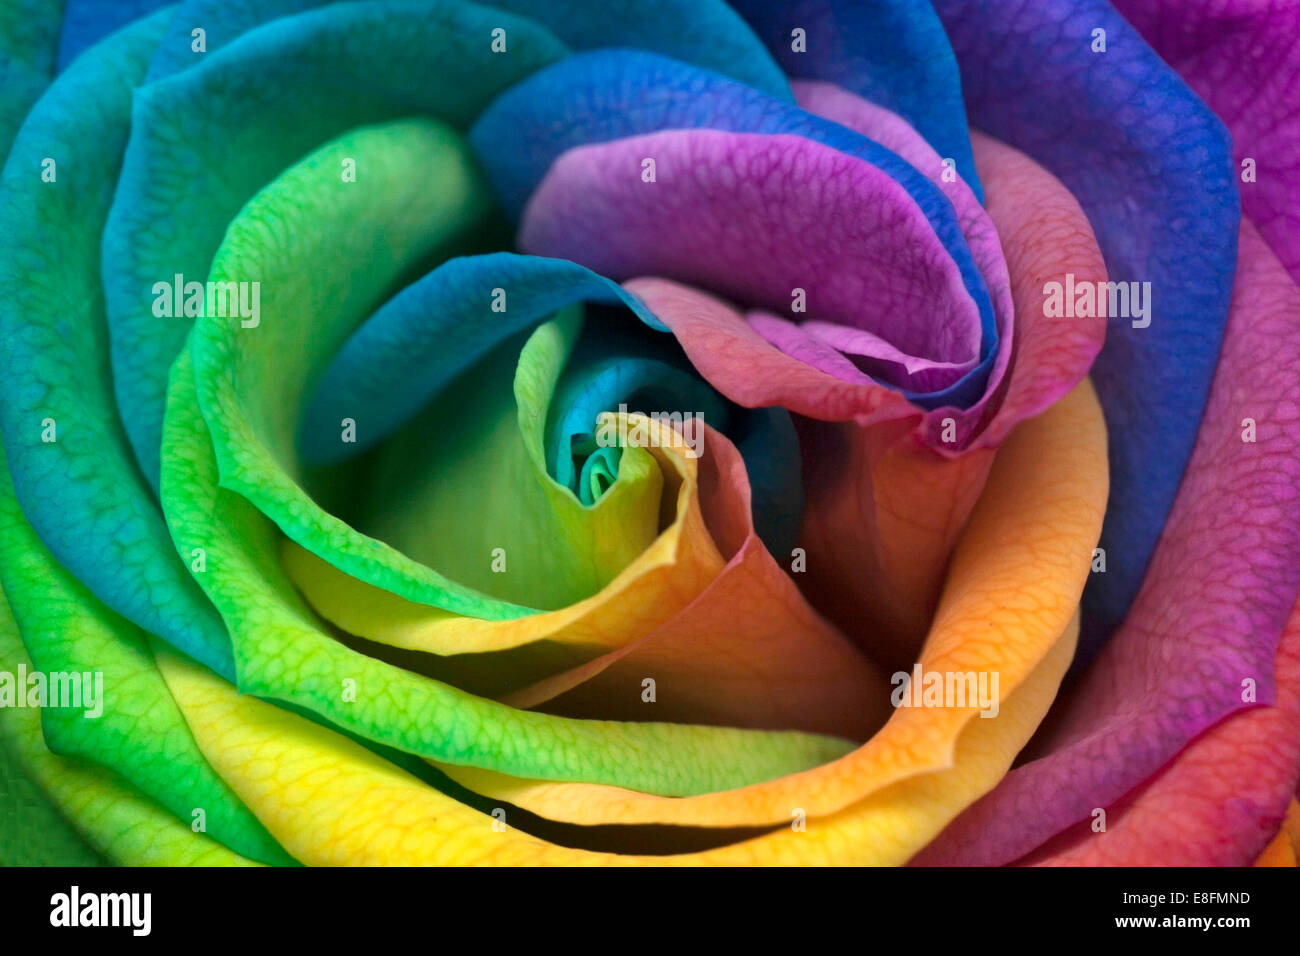 Rainbow rose stock photos rainbow rose stock images alamy indonesia jakarta close up of rainbow rose stock image junglespirit Image collections